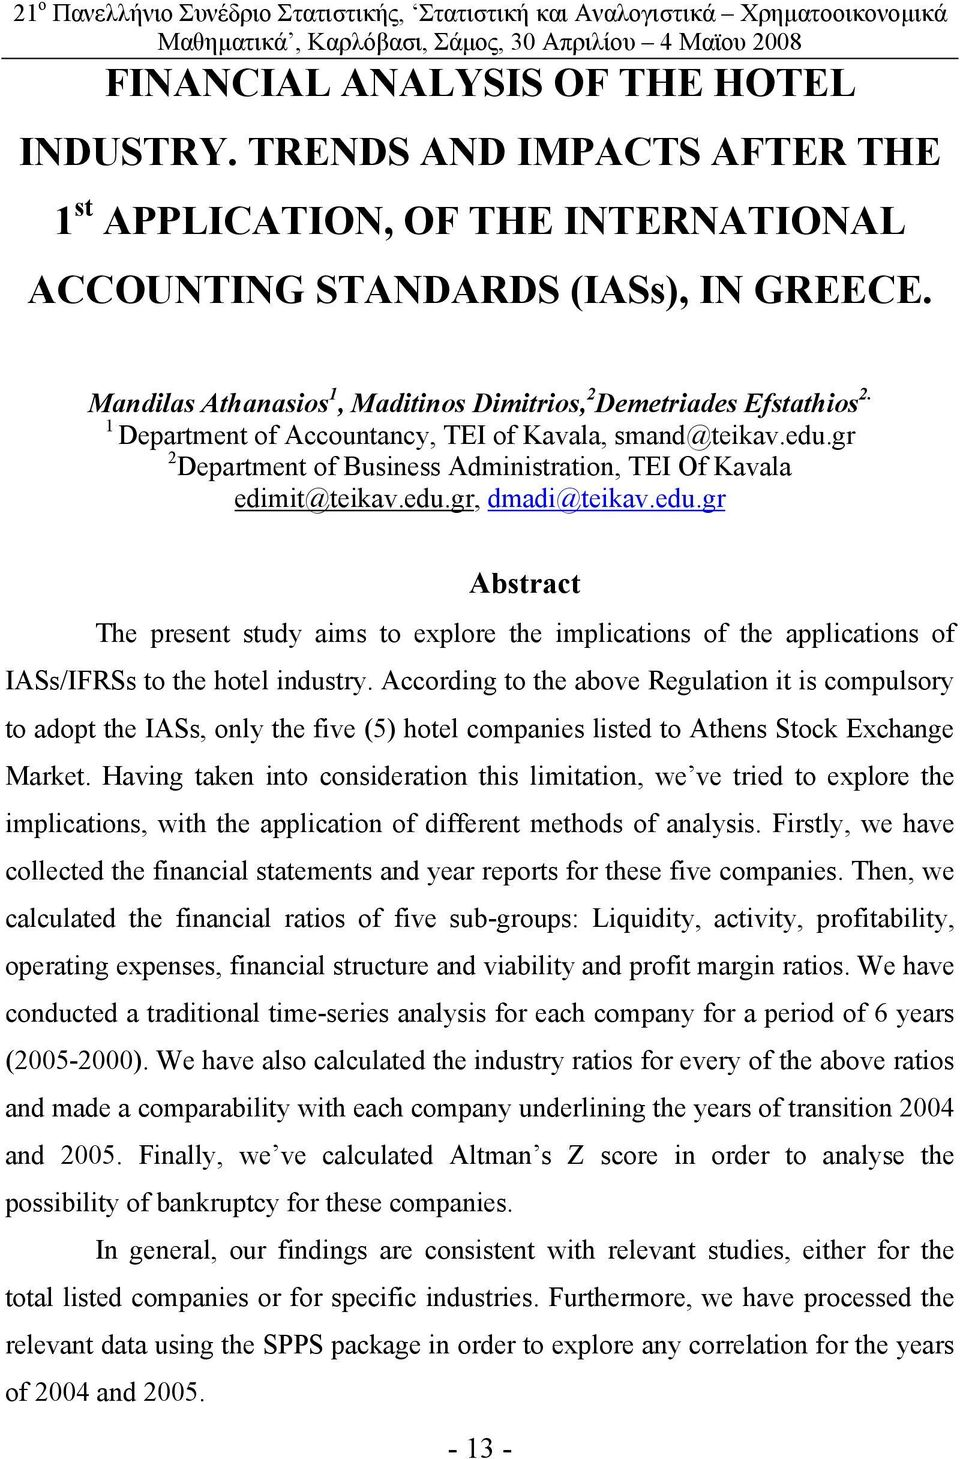 gr 2 Department of Business Administration, TEI Of Kavala edimit@teikav.edu.gr, dmadi@teikav.edu.gr Abstract The present study aims to explore the implications of the applications of IASs/IFRSs to the hotel industry.